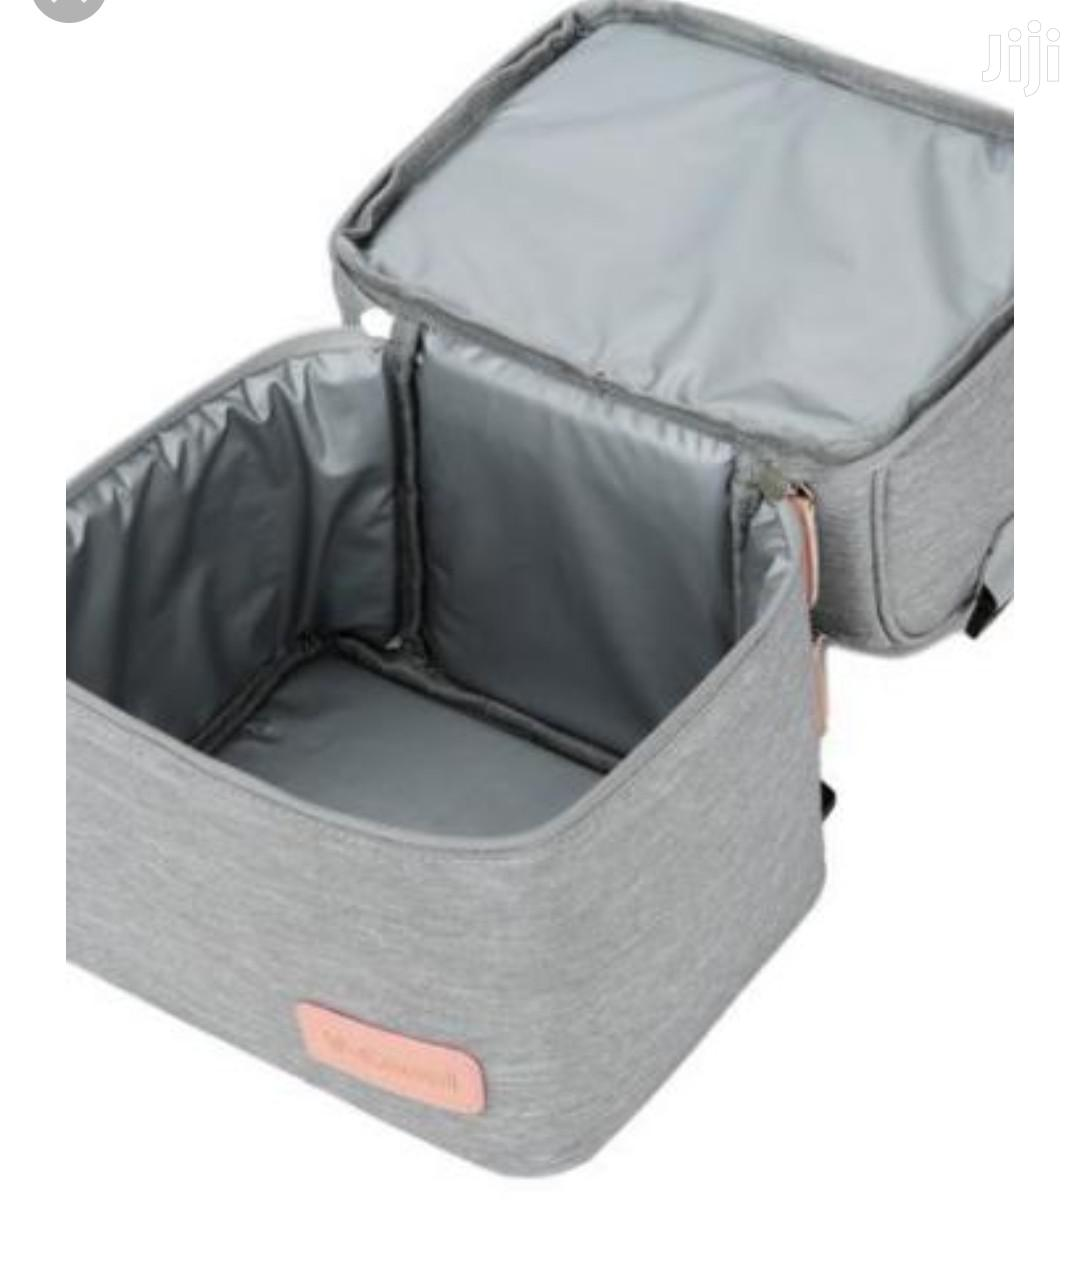 V-cool Cooler/Lunch Bag-grey   Babies & Kids Accessories for sale in Ikeja, Lagos State, Nigeria